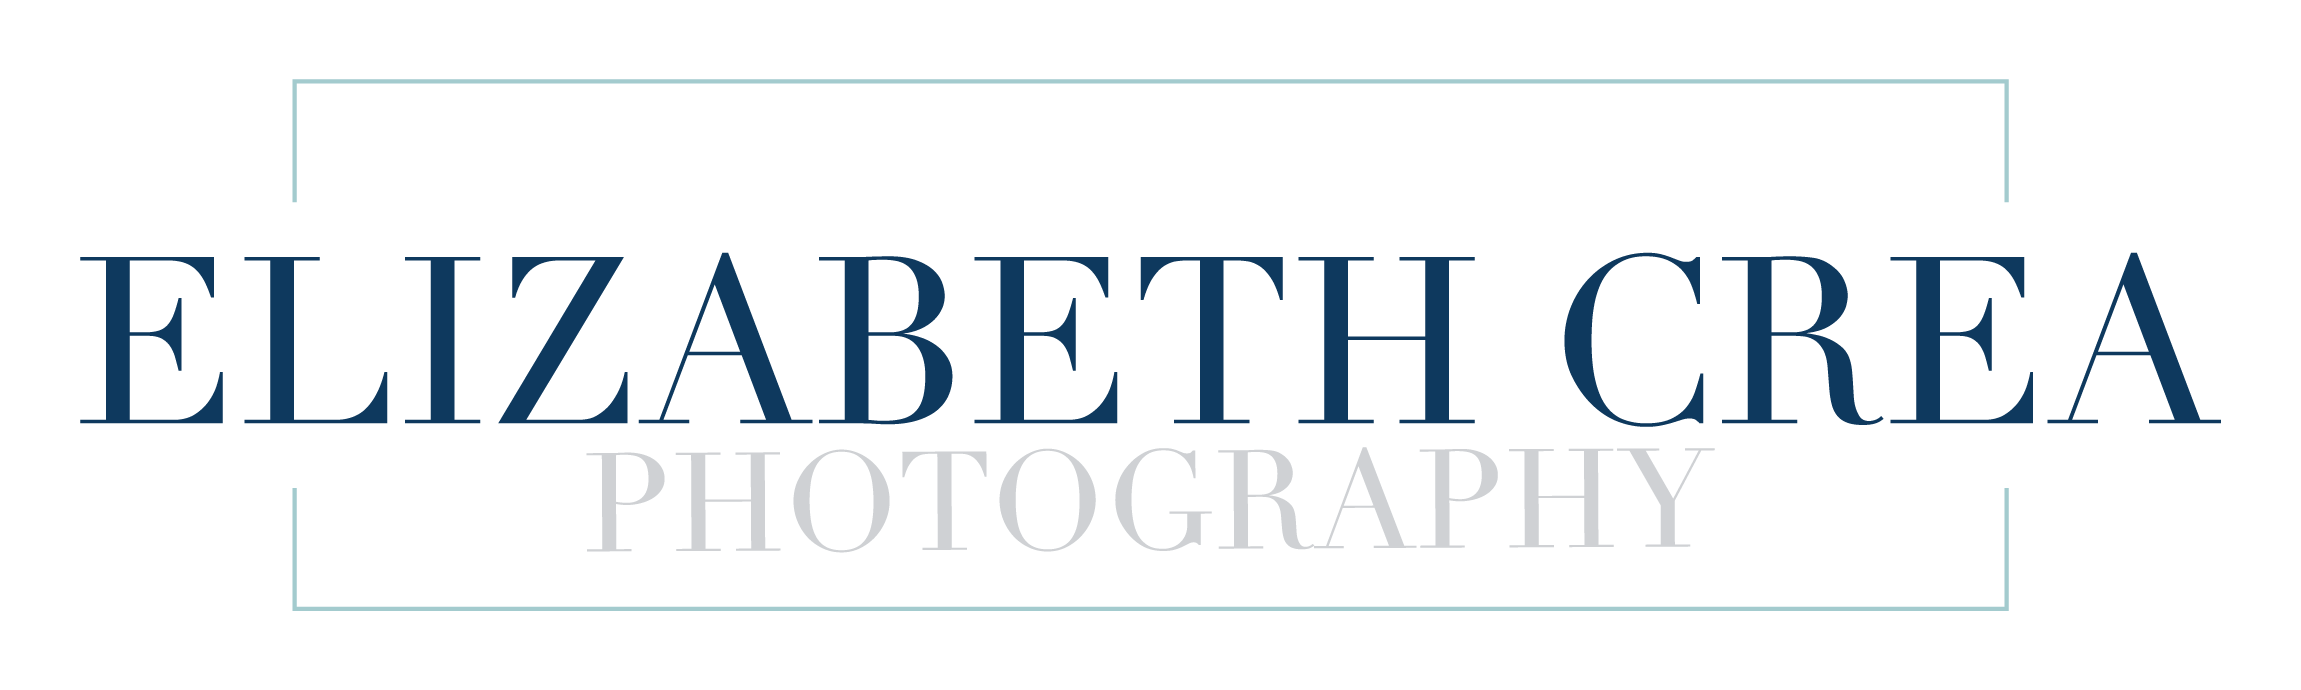 Elizabeth Crea Photography, LLC